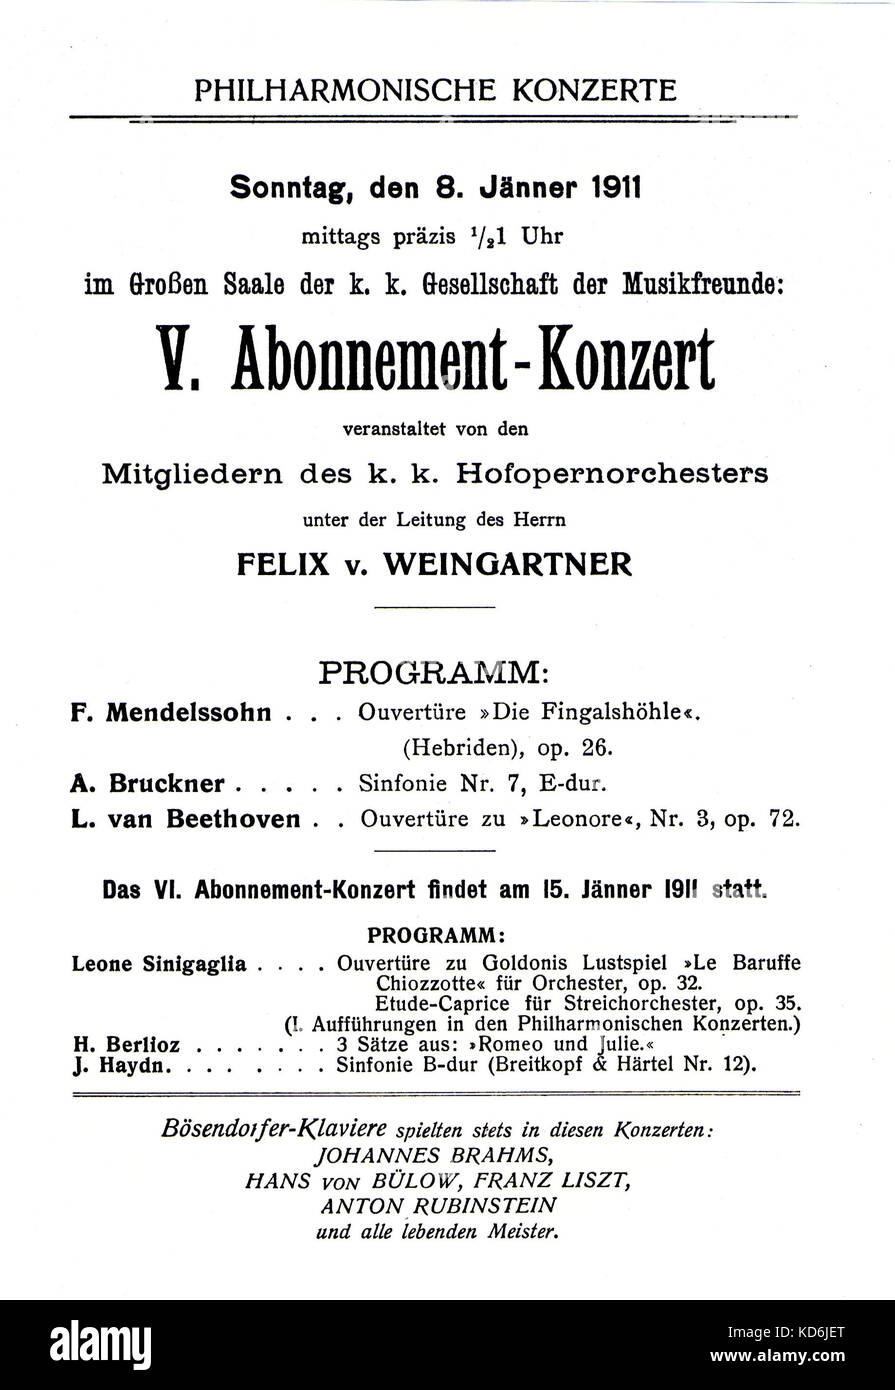 Announcement for a concert,  Felix Weingartner conducting the Vienna Philharmonic Orchestra at the Gesellschaft - Stock Image